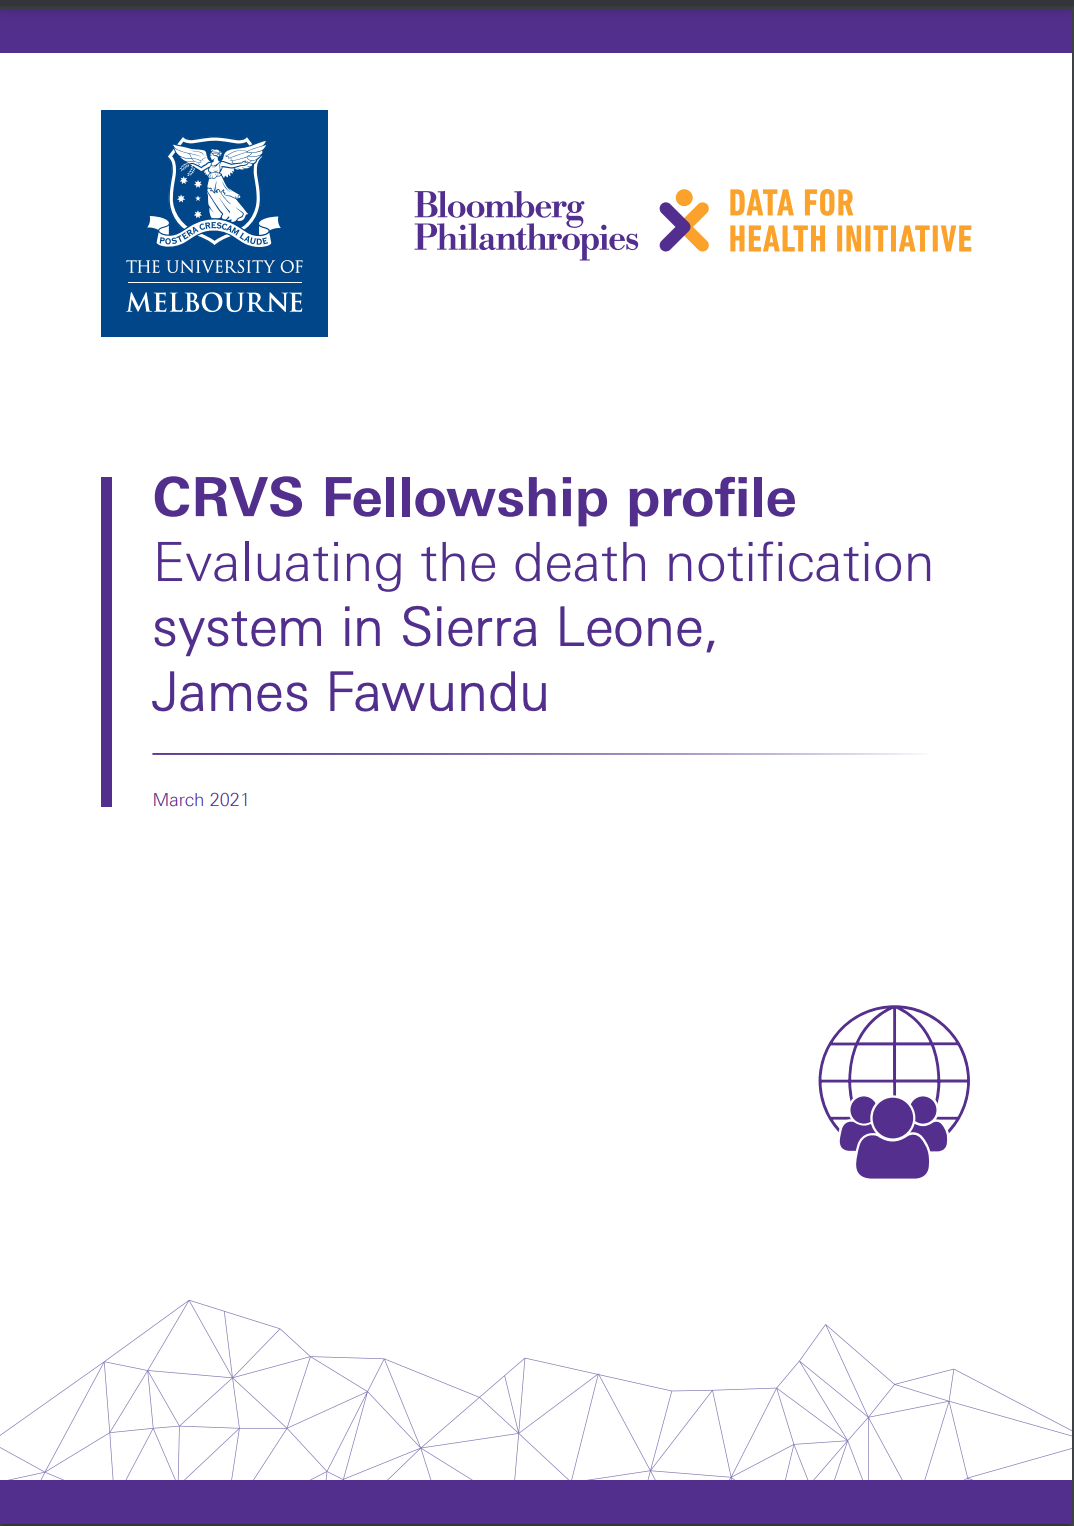 CRVS Fellowship profile Evaluating the death notification system in Sierra Leone, James Fawundu thumbnail